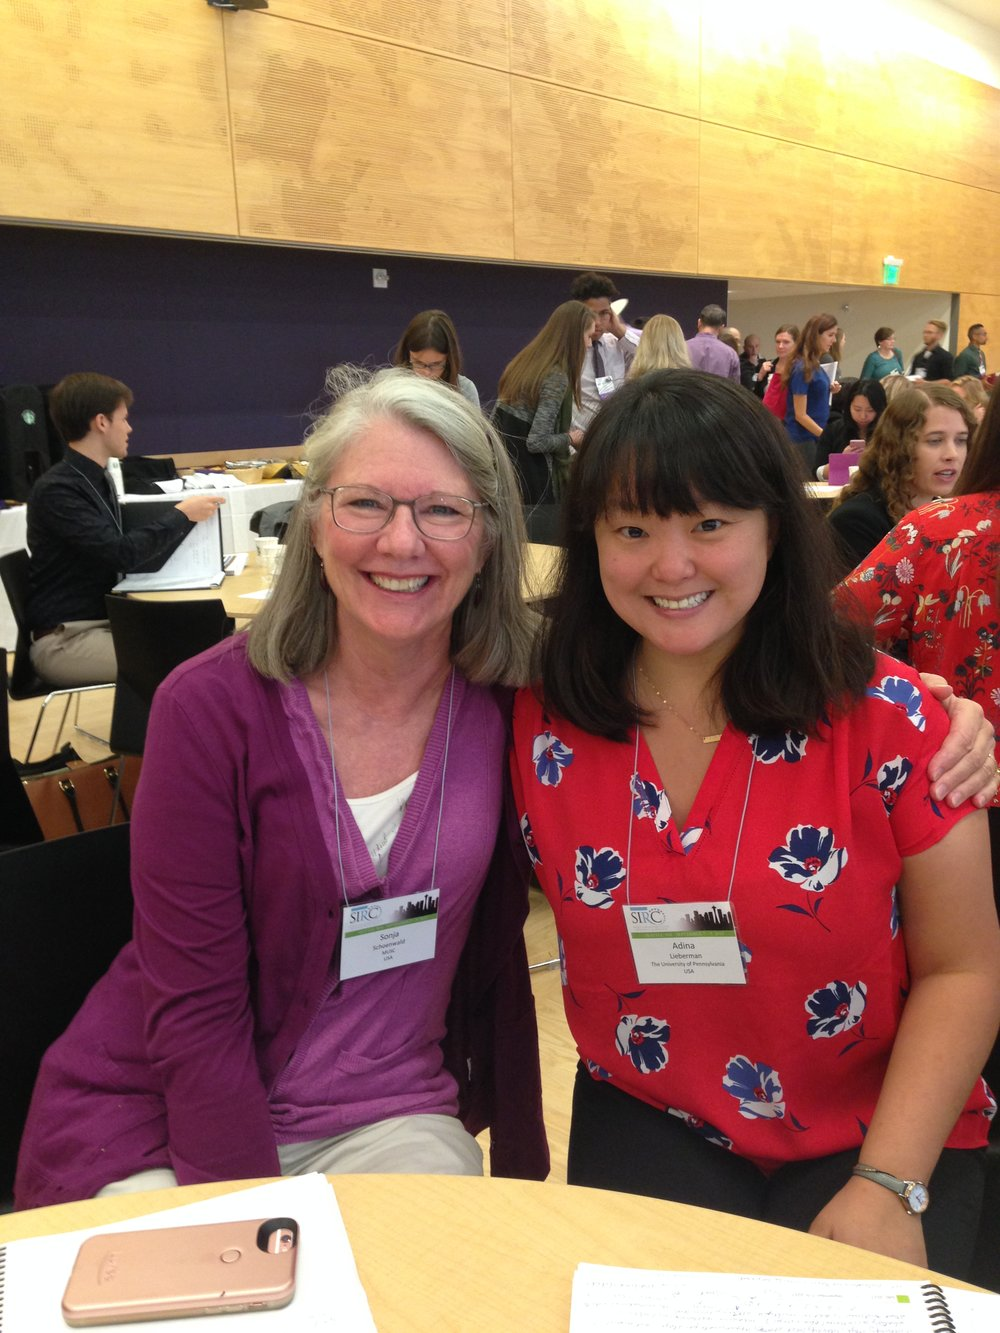 Sonja Schoenwald (FACTS co-investigator) and Adina Lieberman at SIRC Conference in September 2017